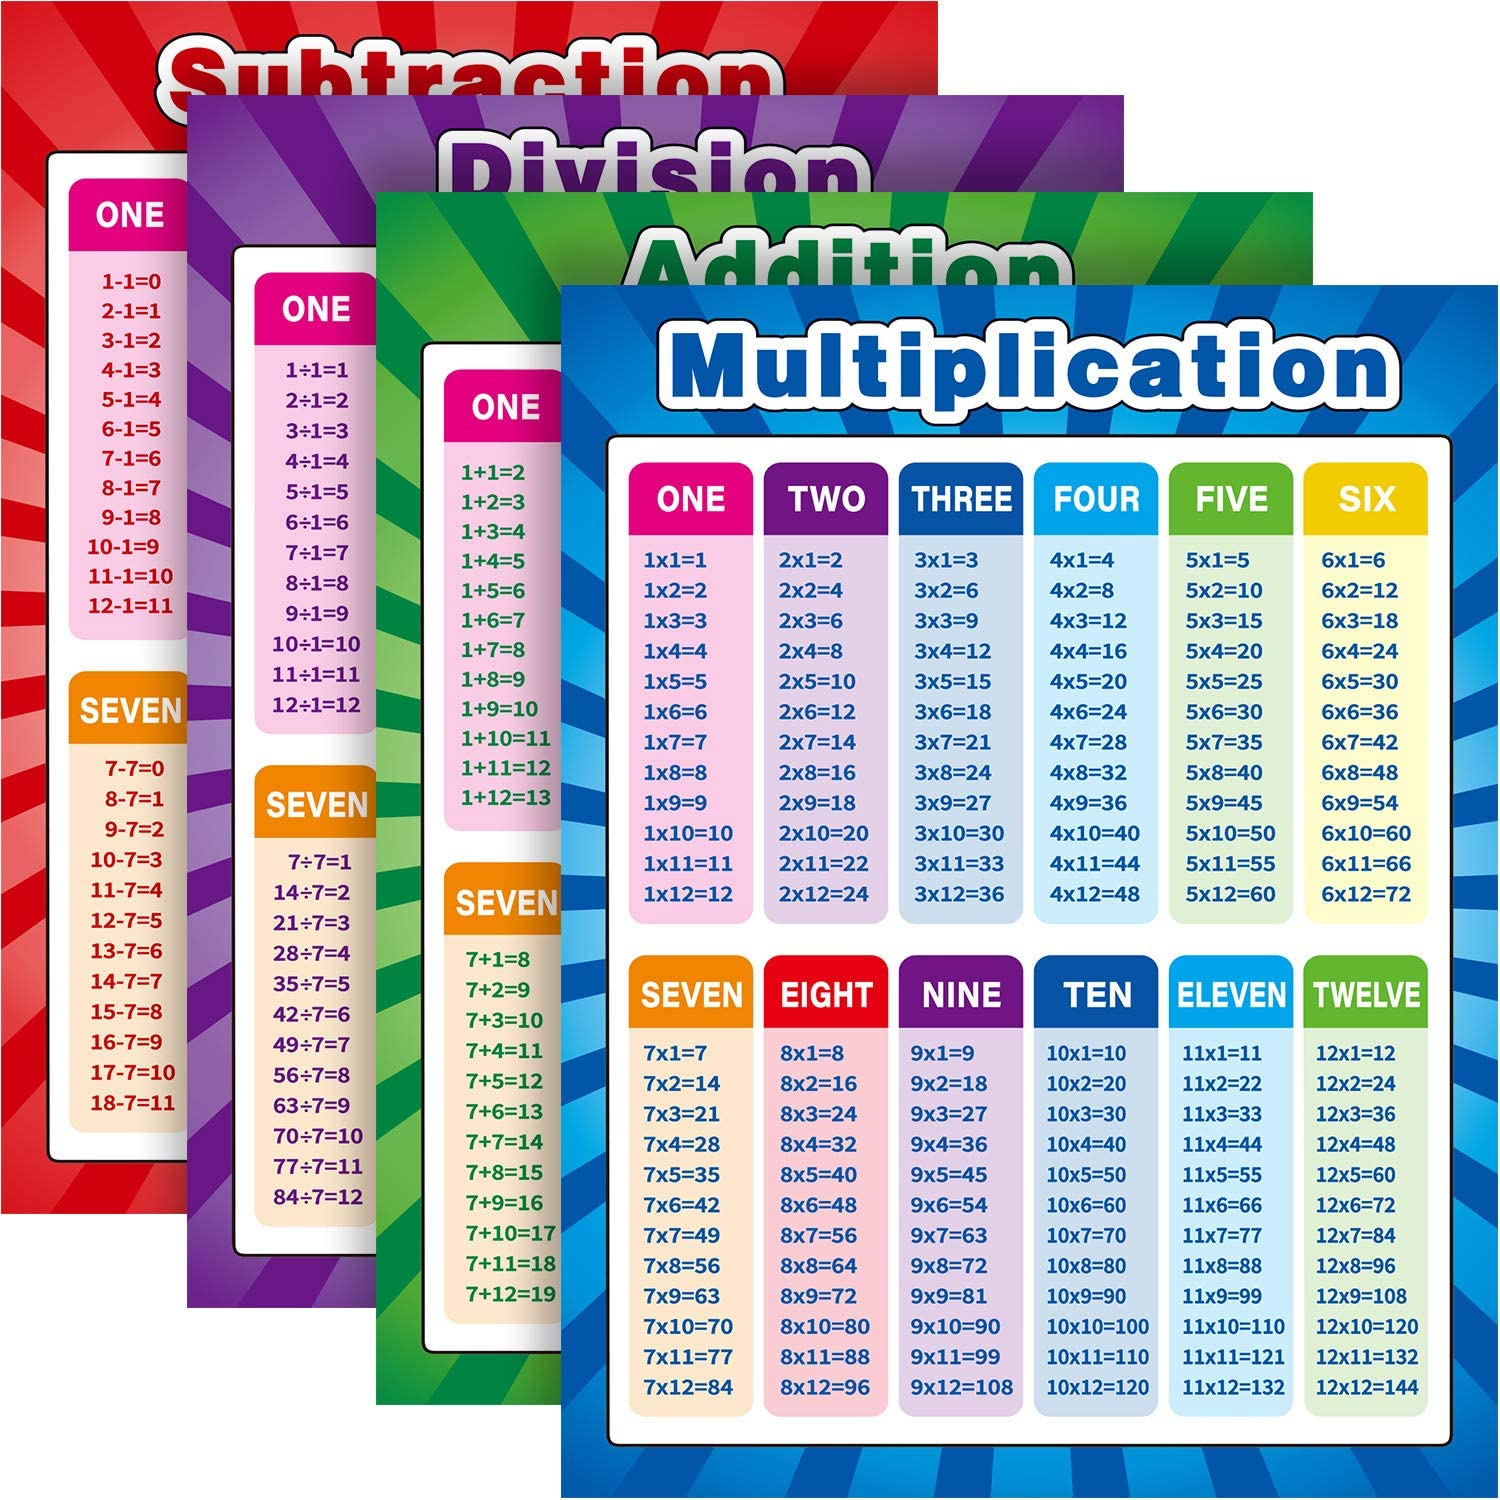 Extra Large Educational Math Posters, Multiplication Division Addition Subtraction Educational Table Chart Posters for Kids, Elementary Middle School Classroom, 17 x 22 Inch (Assorted Style, 4 Pieces)